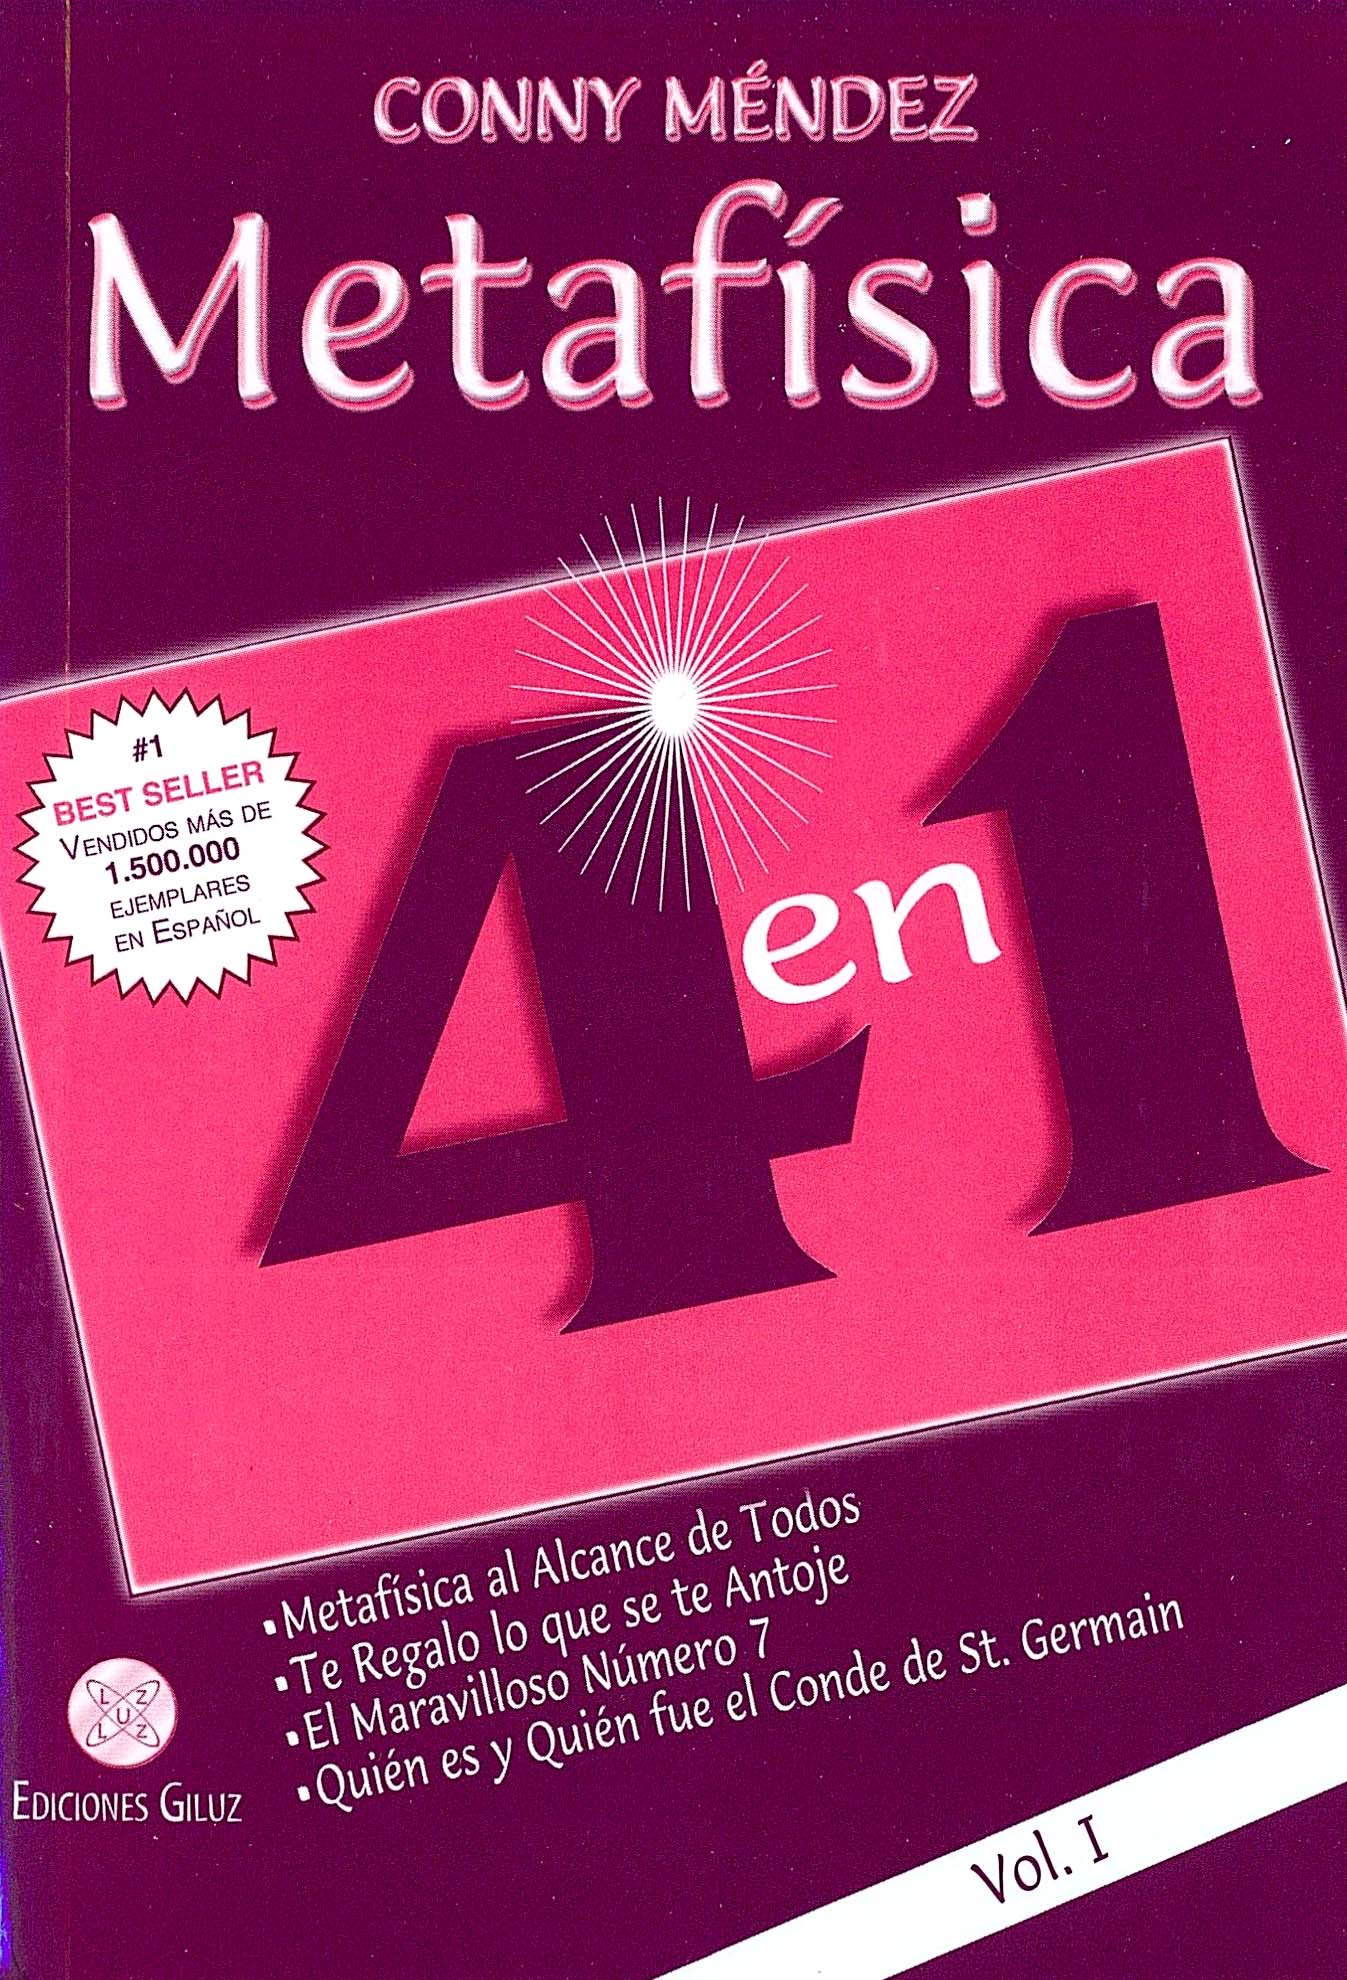 Metafísica 4 En 1 Volumen I Aavv 9789806329478 Books